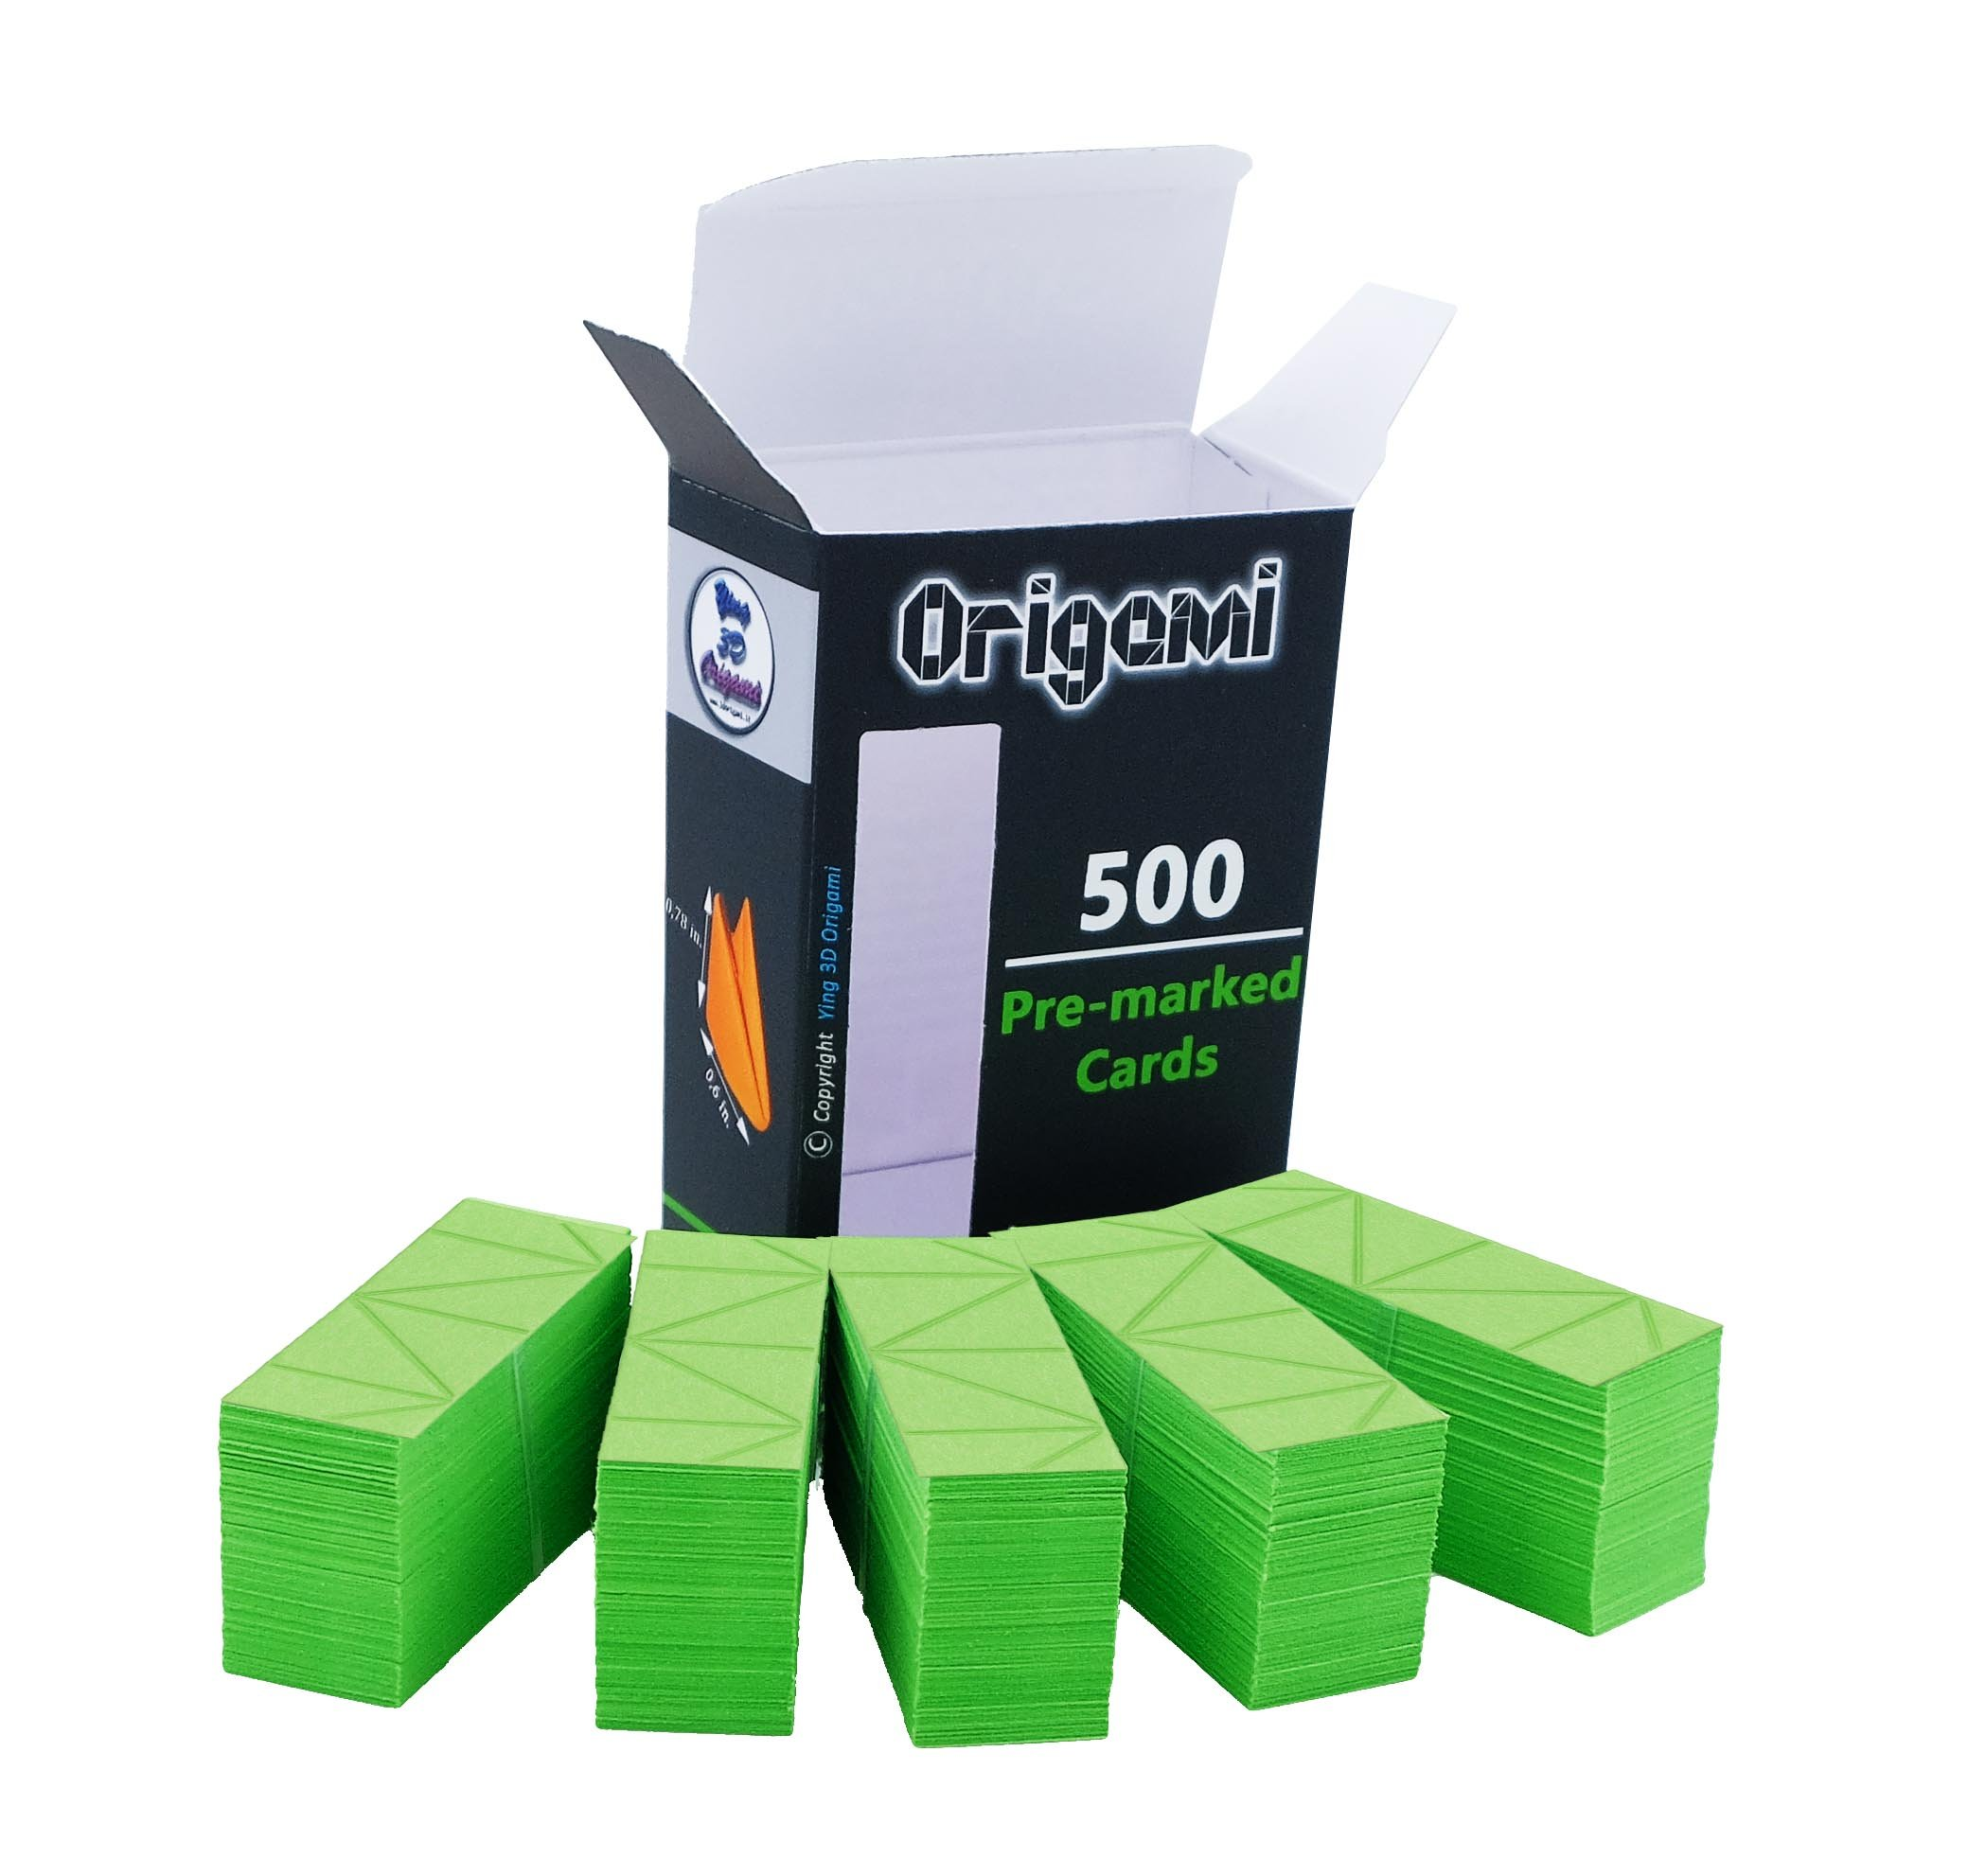 3D Origami paper - 500 Light Green Pcs. - Pre-Marked - Easy And Fast Folding - Equal To A4 1/32 0,44lb English And Italian Printed Instructions - Online Video-Tutorials - Made In Italy (Pistacchio 54)